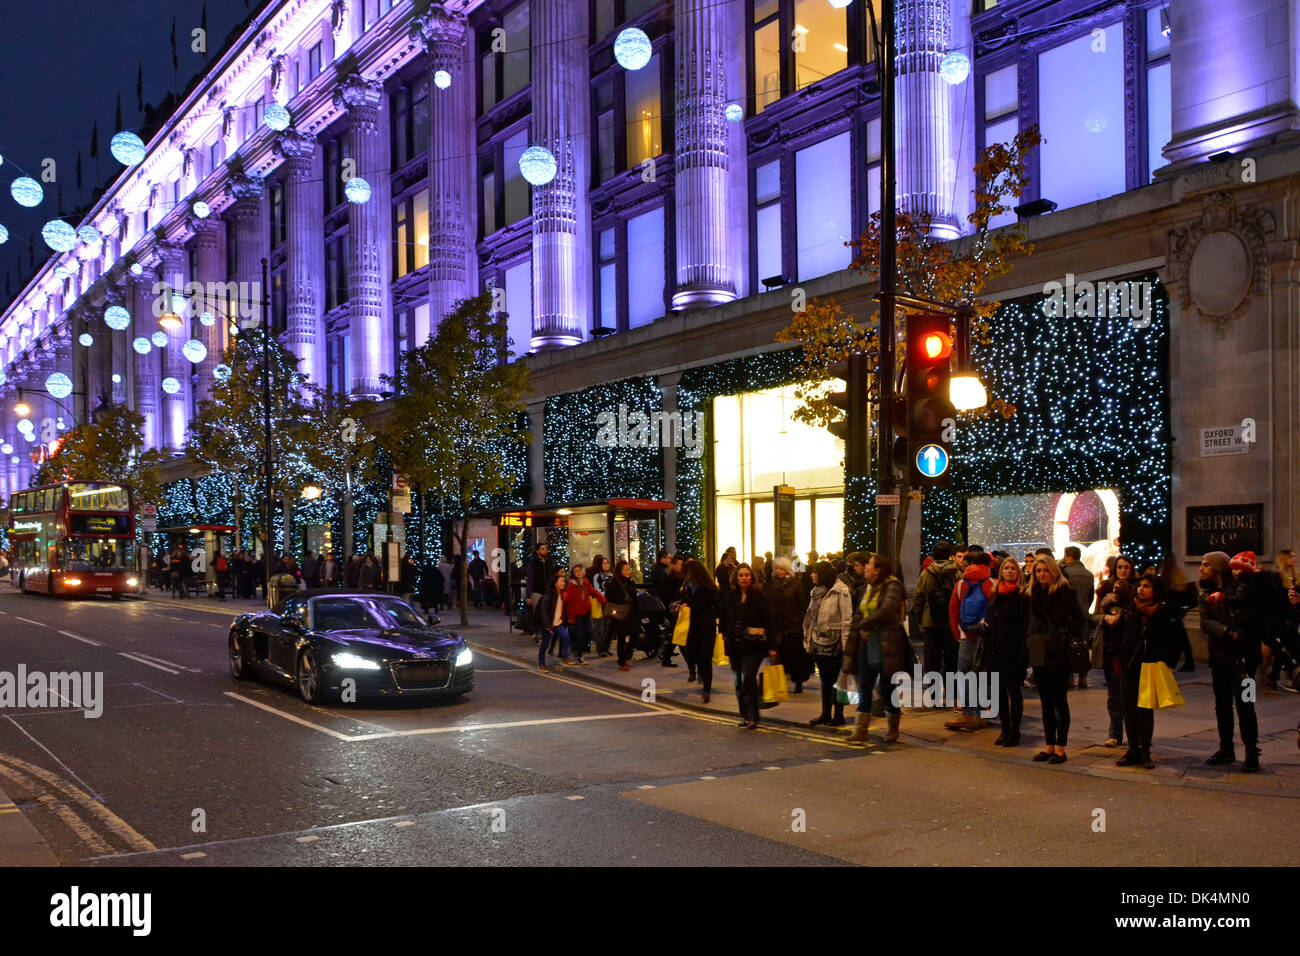 Shoppers and Christmas illuminations at Selfridges Department store - Stock Image